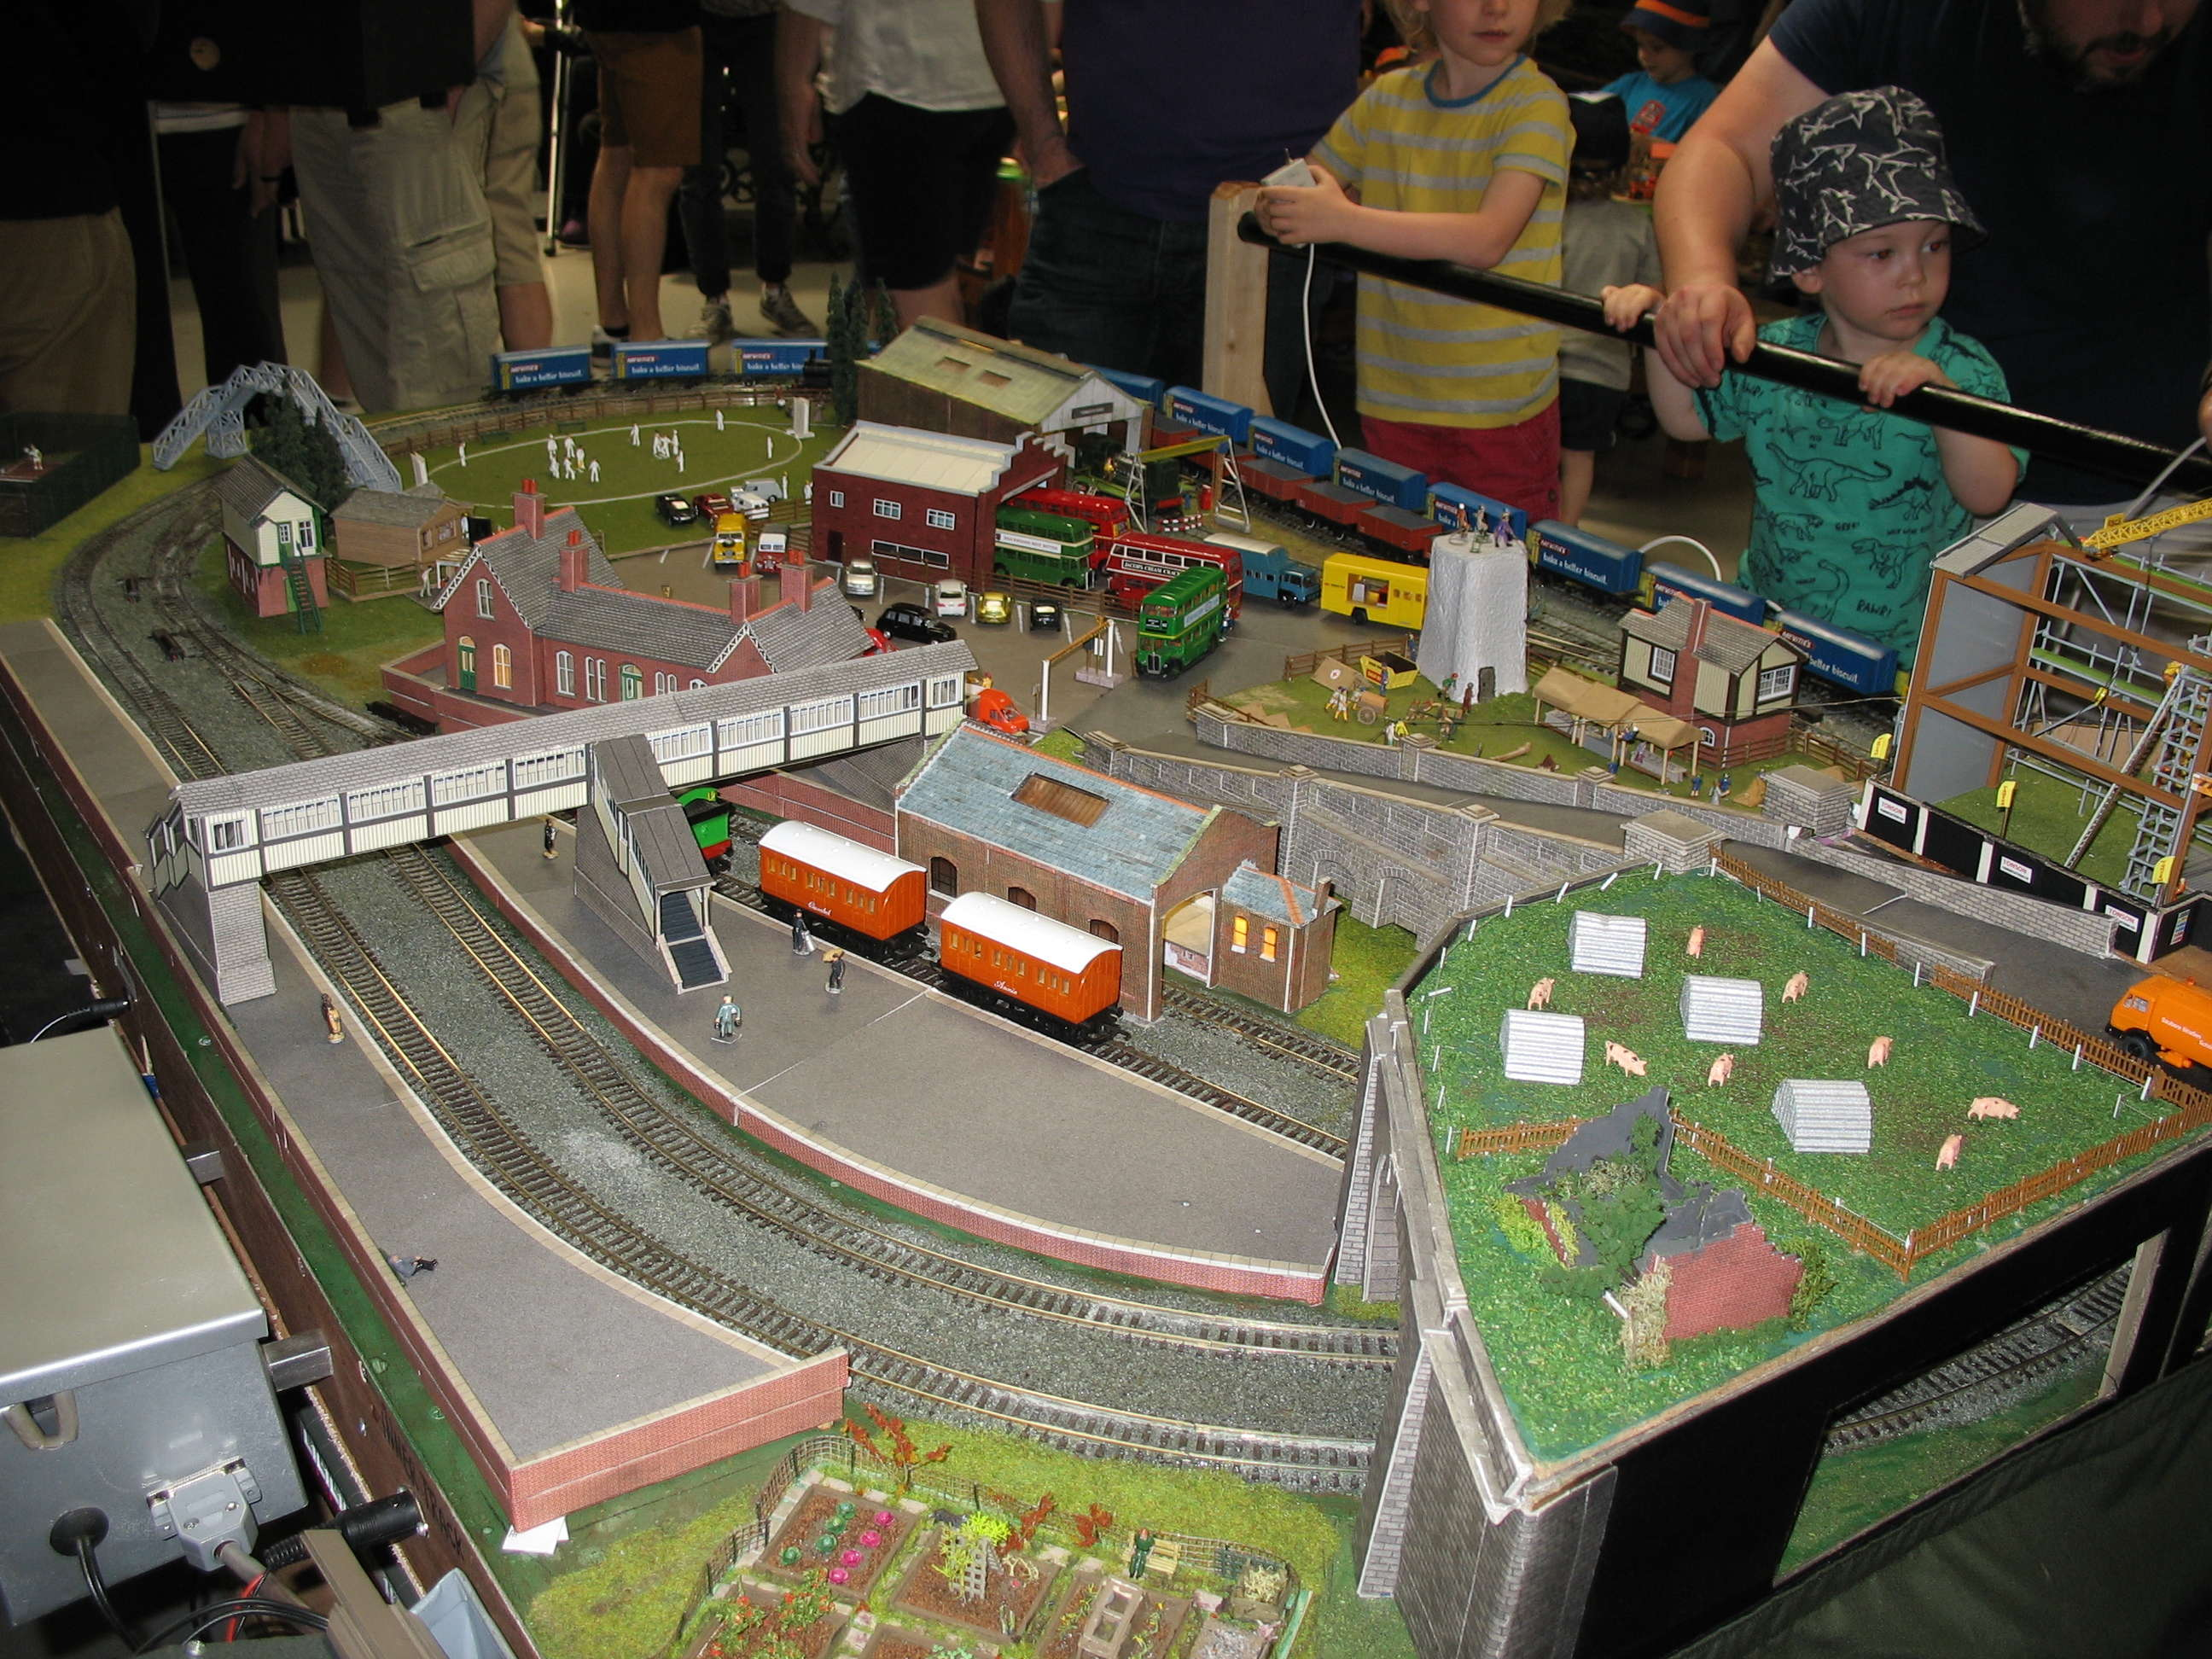 Thomas Themed layout at Bredgar & Wormshill event